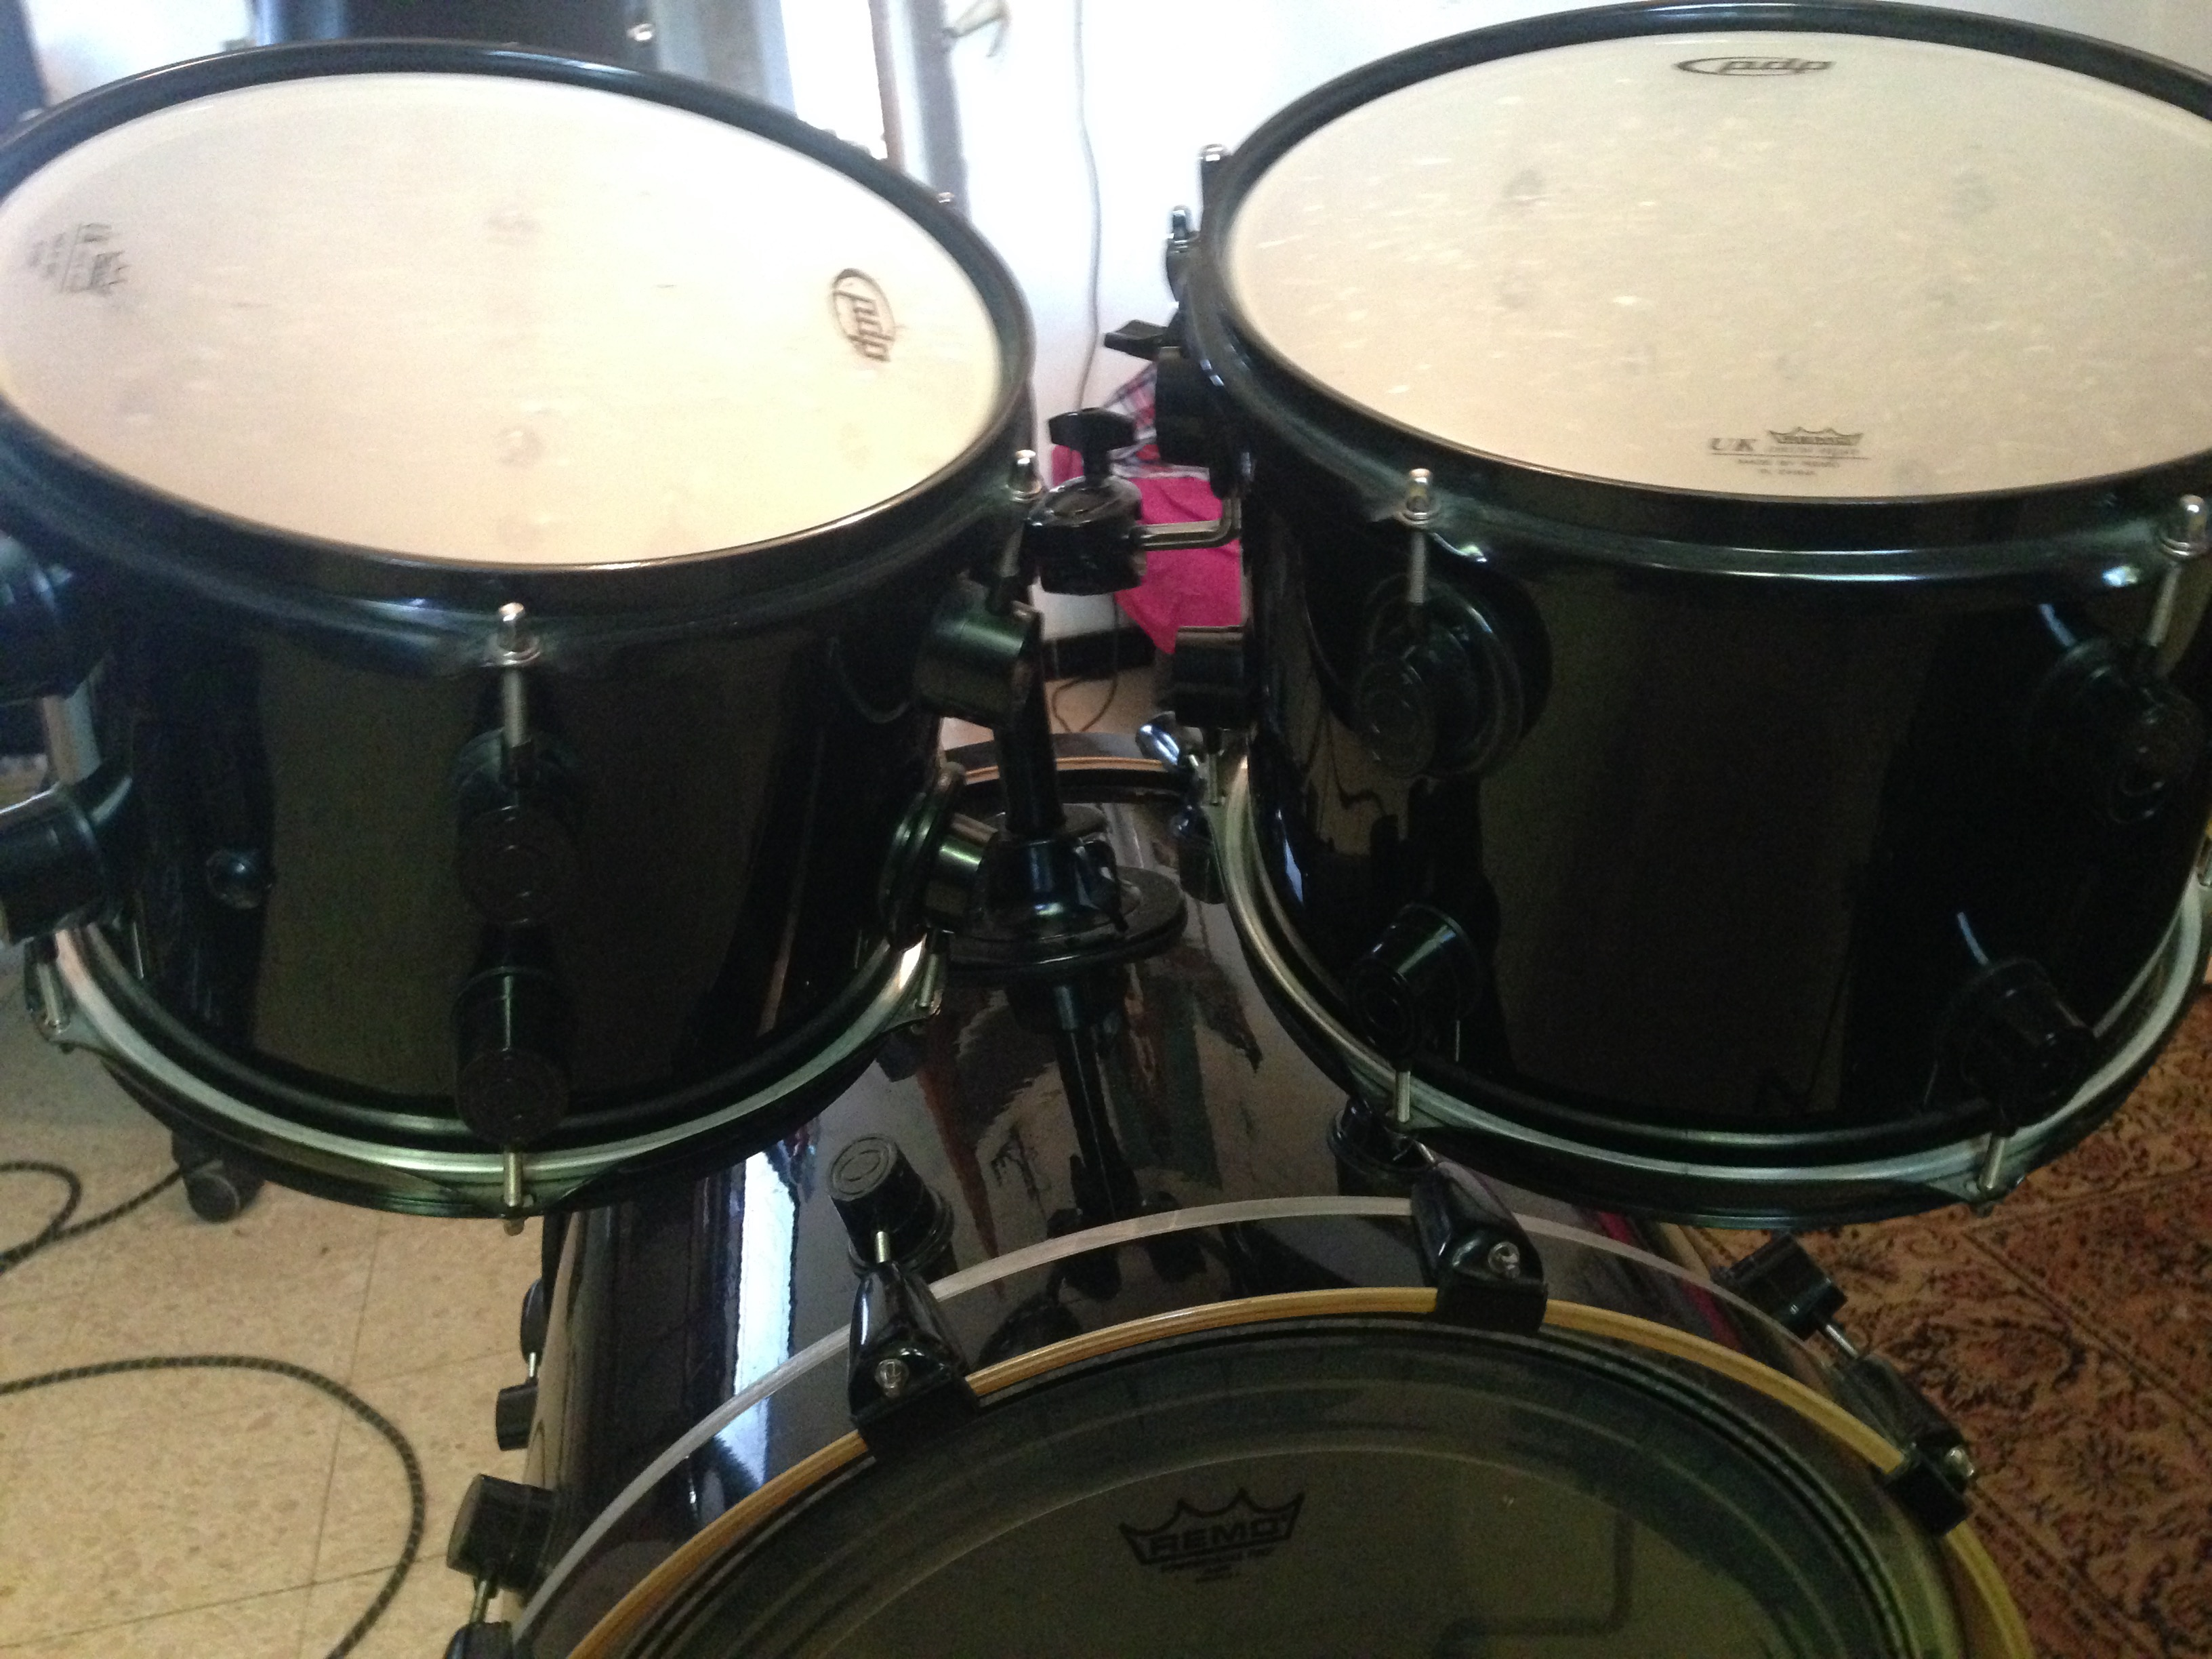 pdp pacific drums and percussion bx image 1536205 audiofanzine. Black Bedroom Furniture Sets. Home Design Ideas